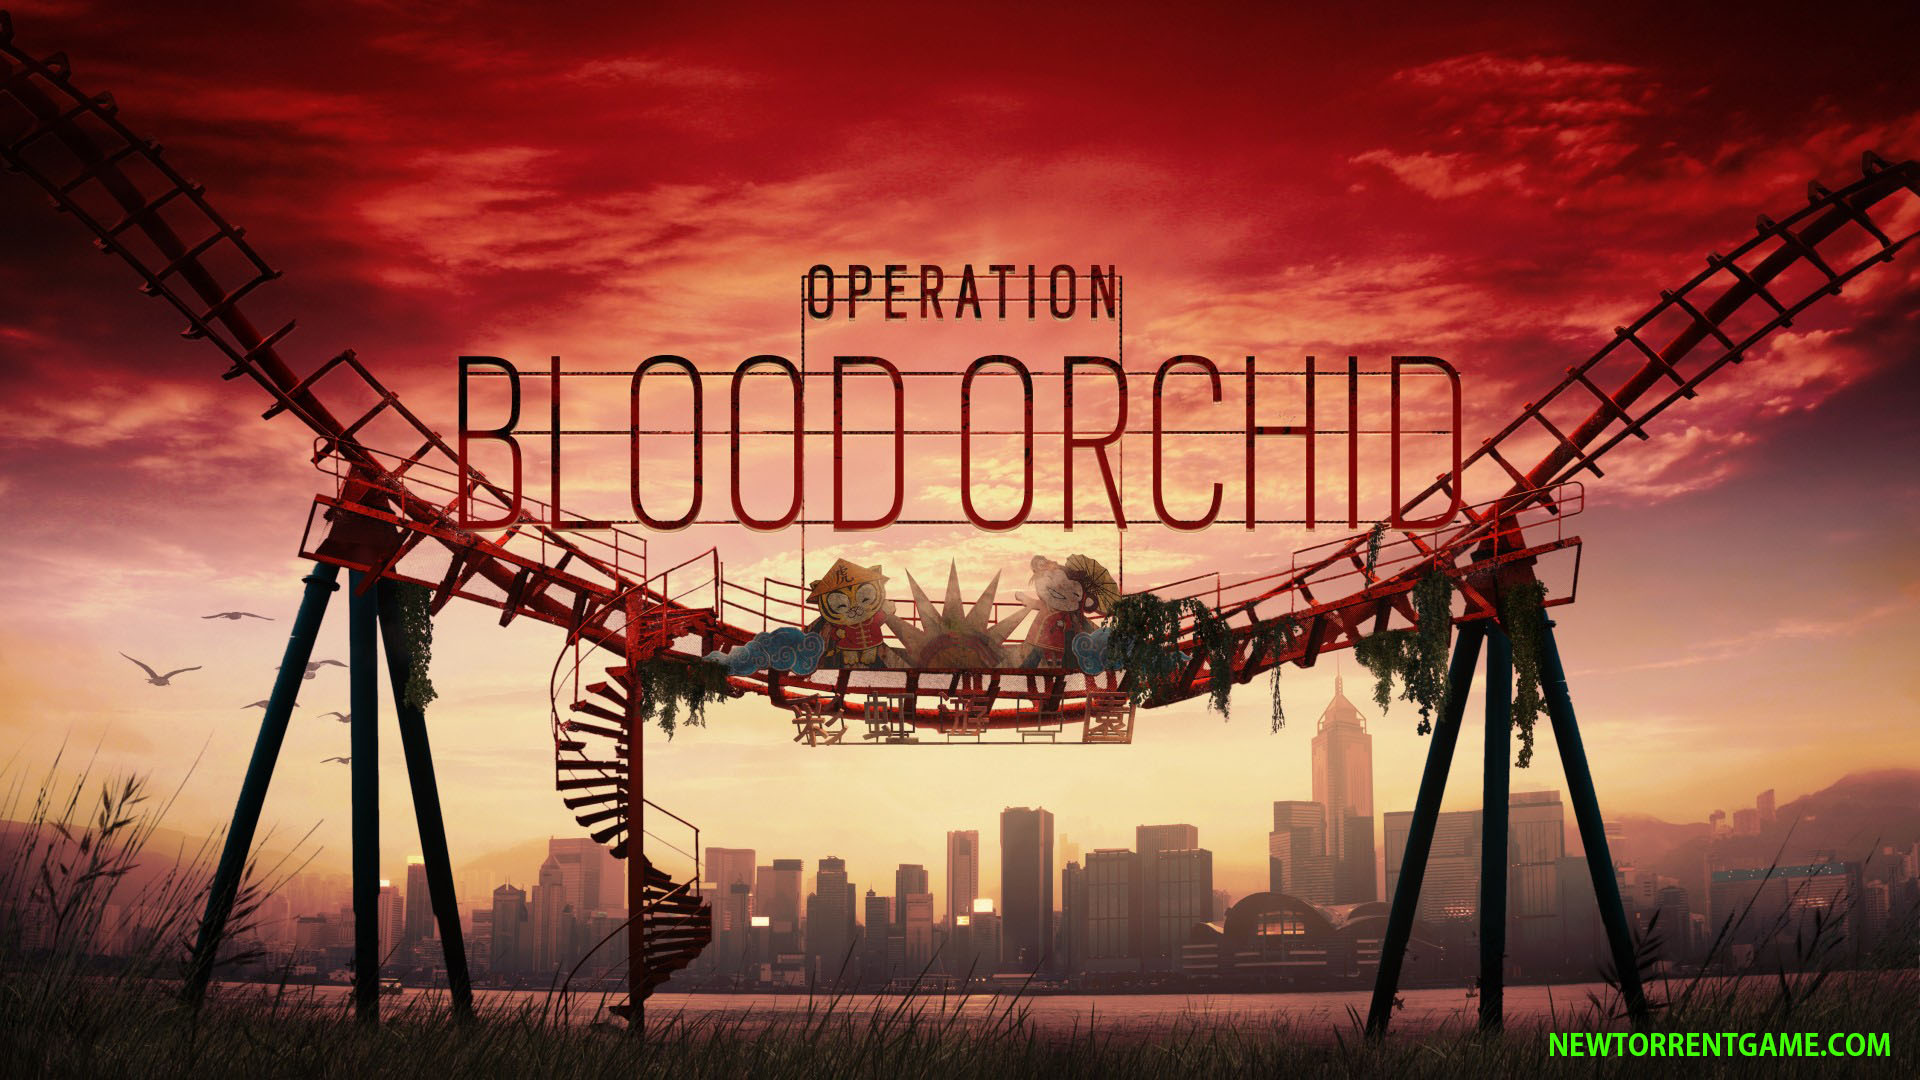 Rainbow Six Siege Operation Blood Orchid Torrent download pc